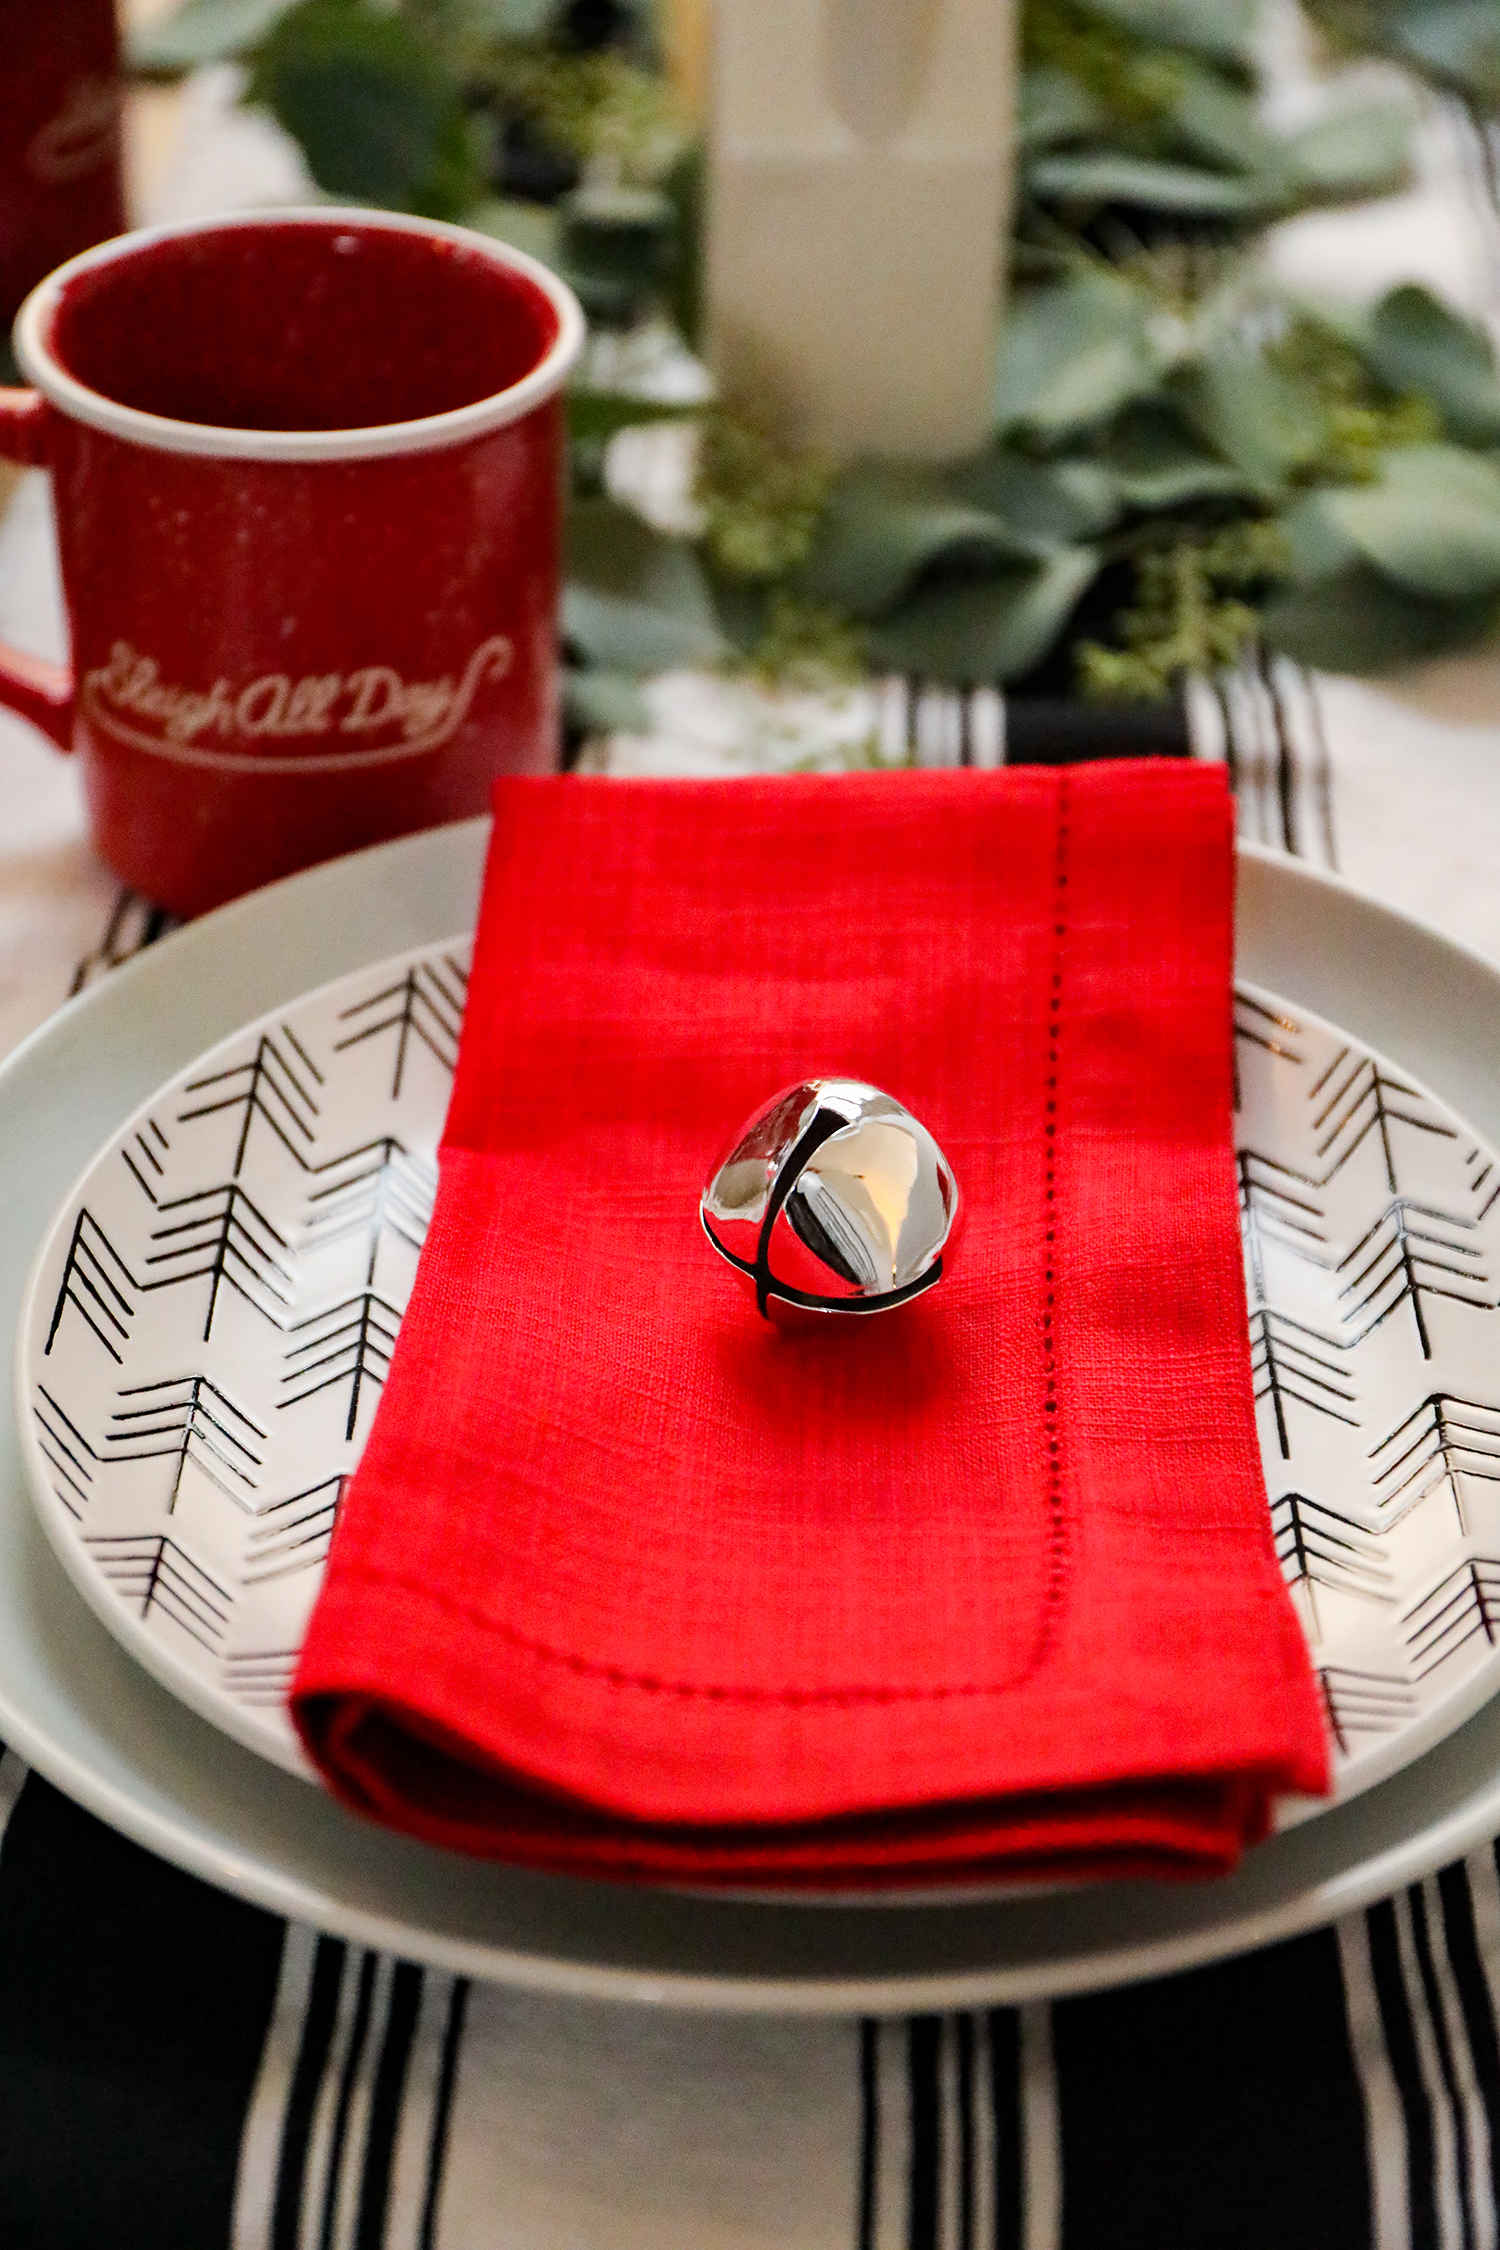 On the hunt for Christmas table settings? I love this modern design, and the black and white accents are great!